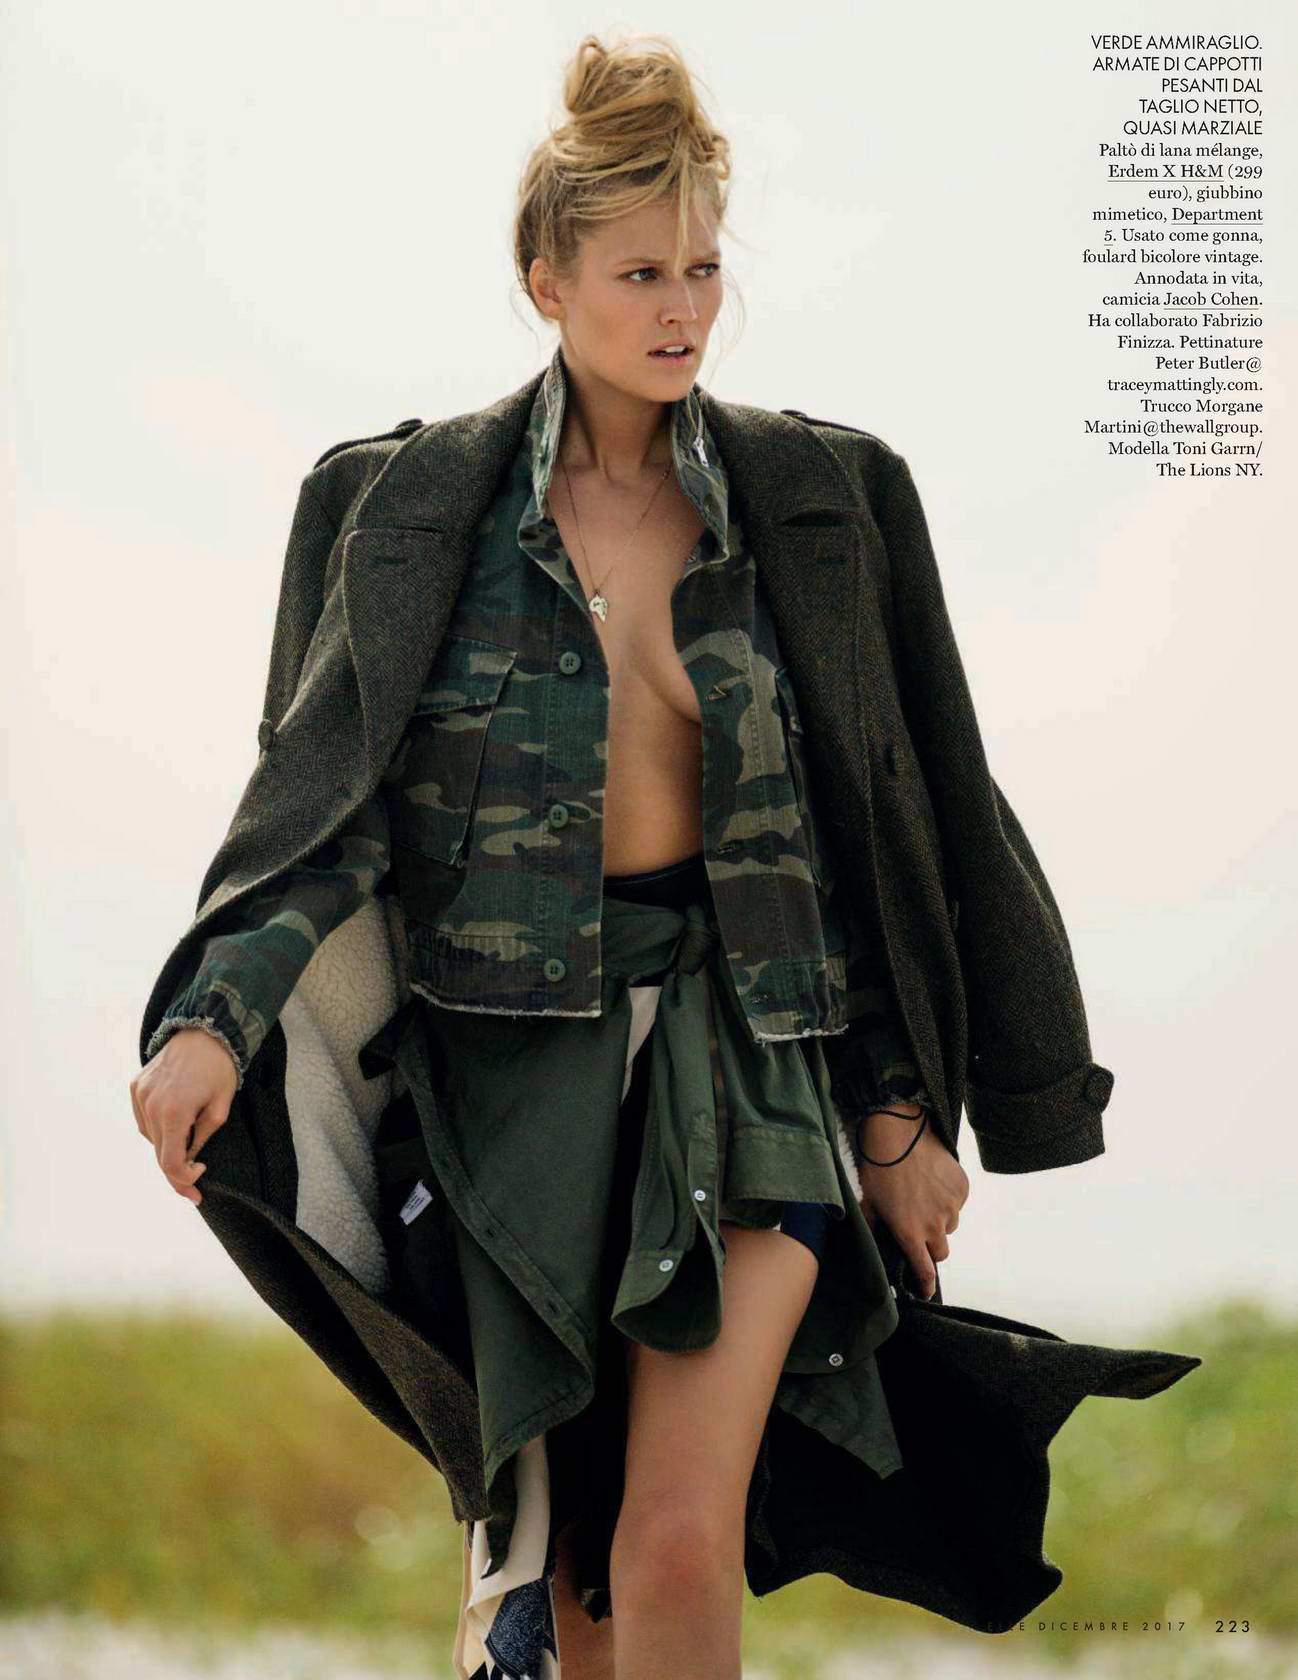 Toni Garrn in ELLE Magazine, Italy - December 2017